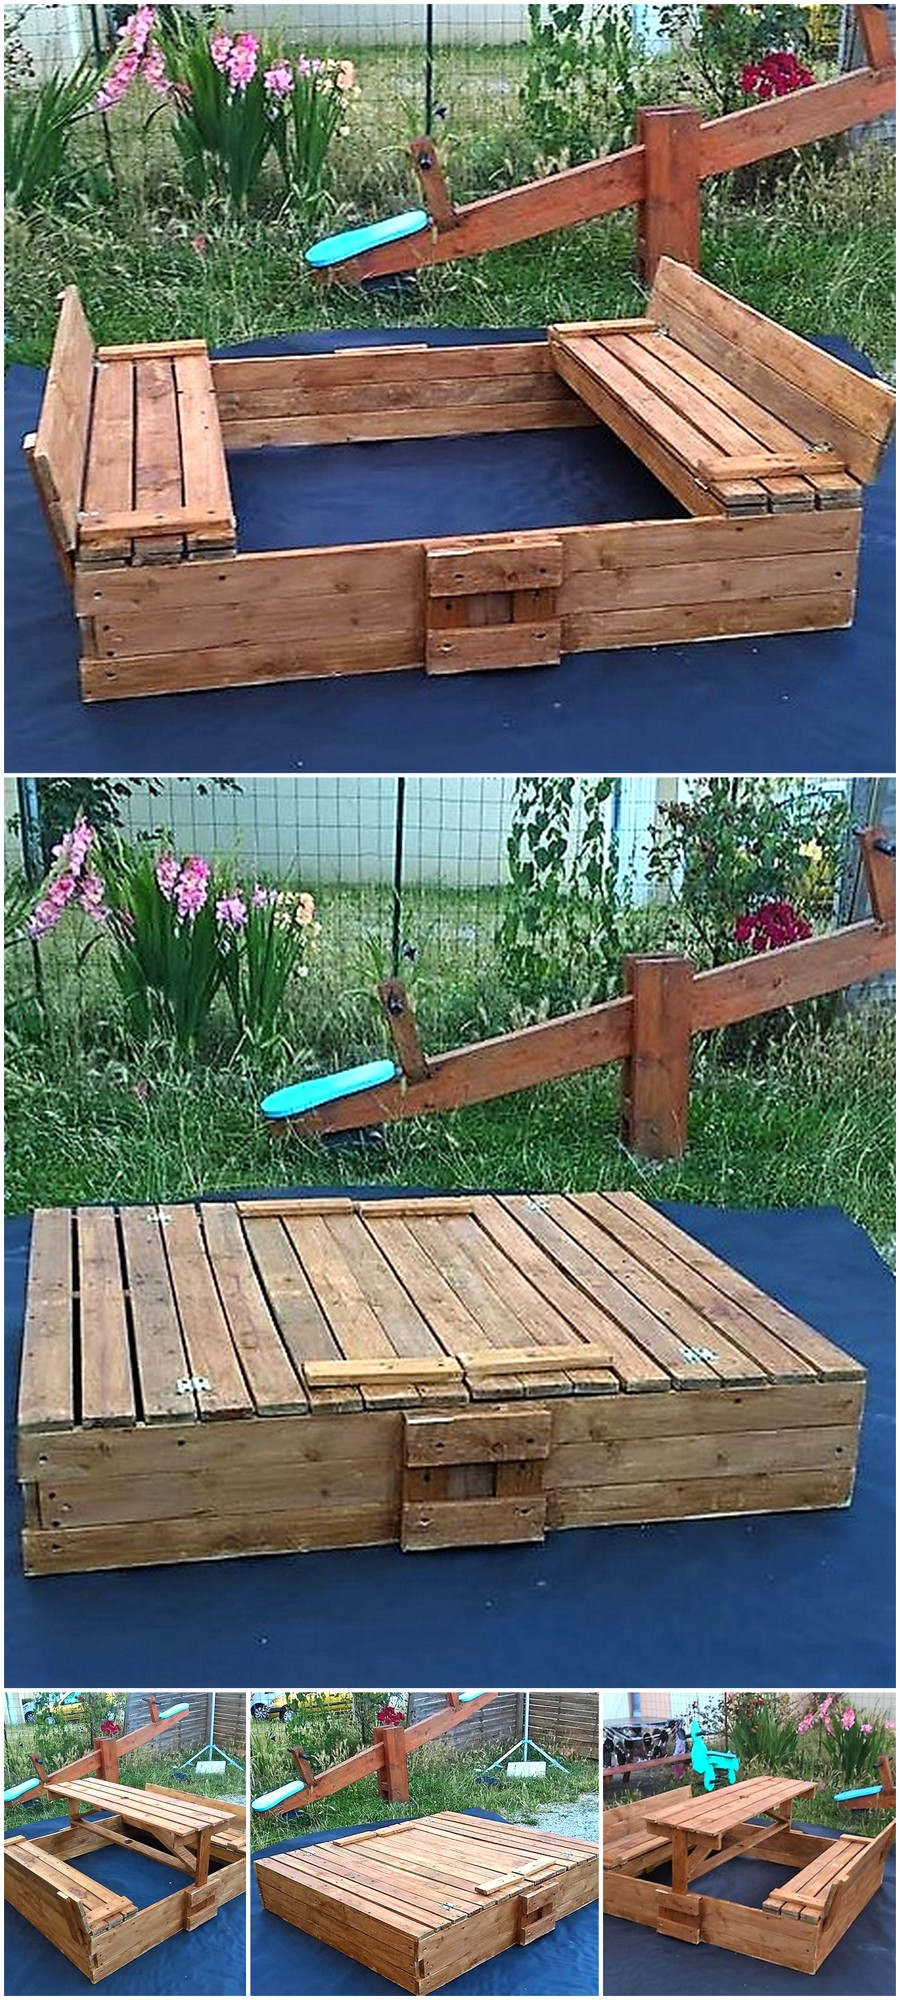 All in e Pallets Bench Picnic Table Sandbox Box